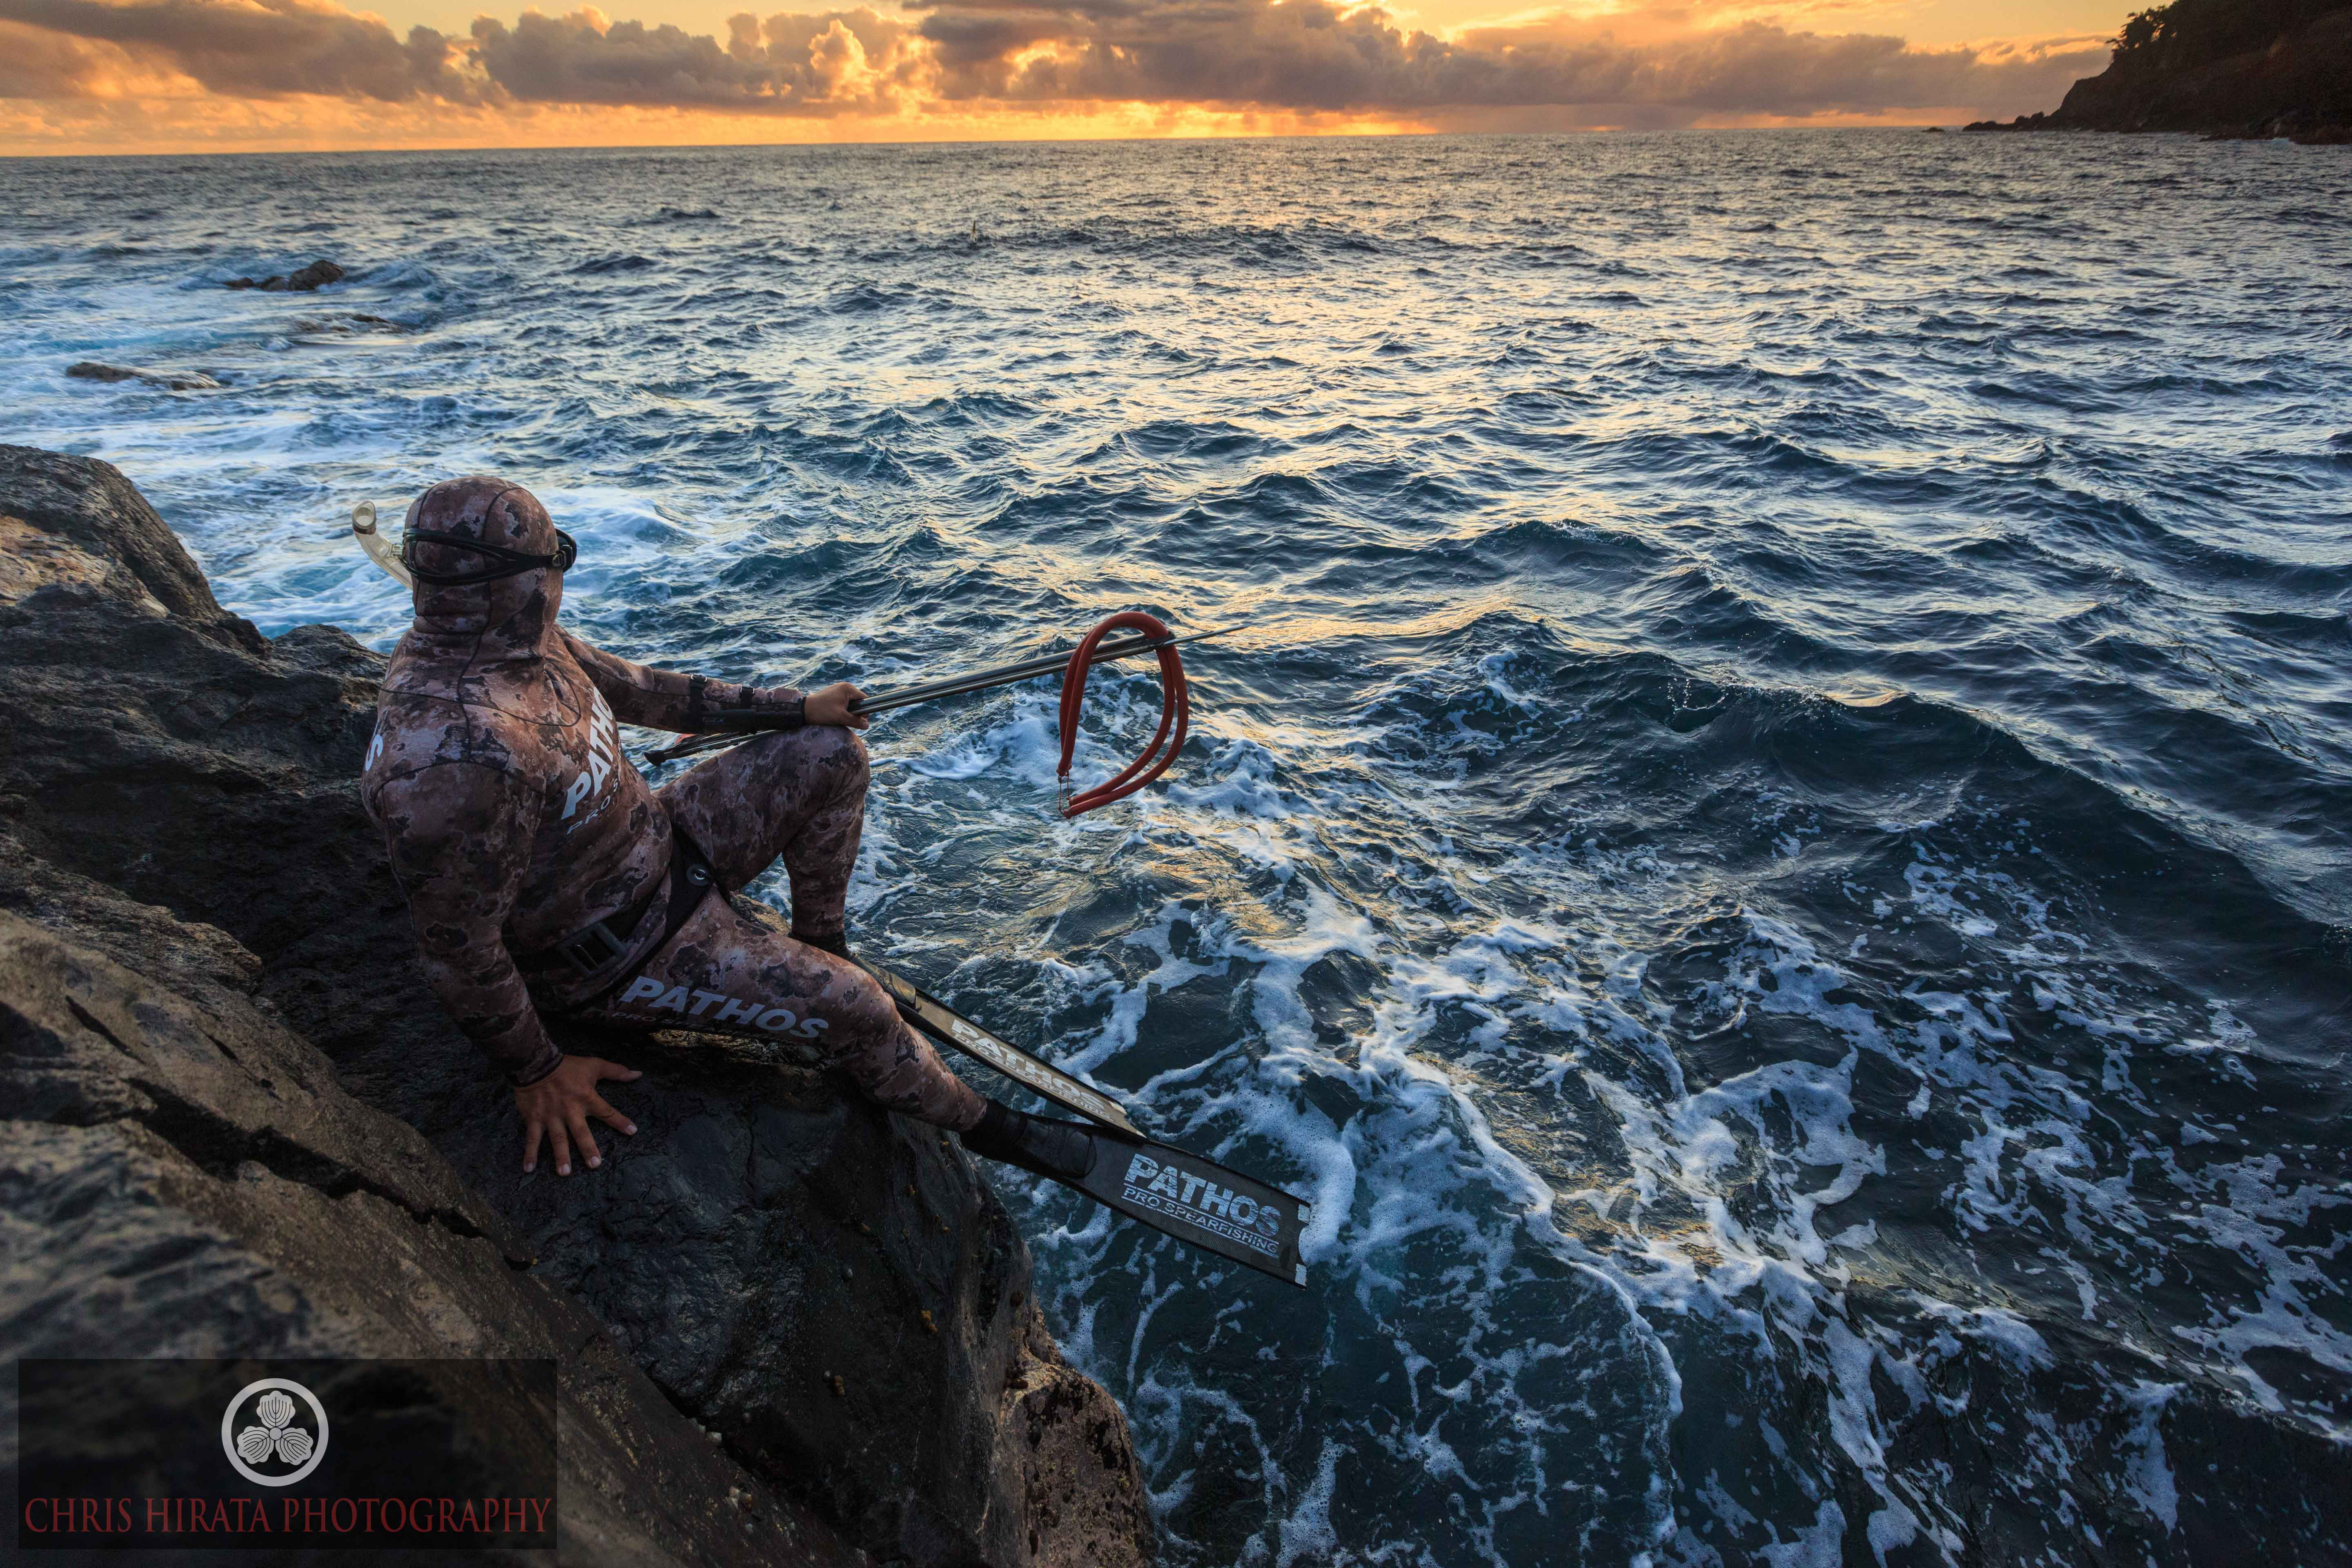 Early Mornings on the Coast: Spearfishing in Hawaii | Harvesting Nature